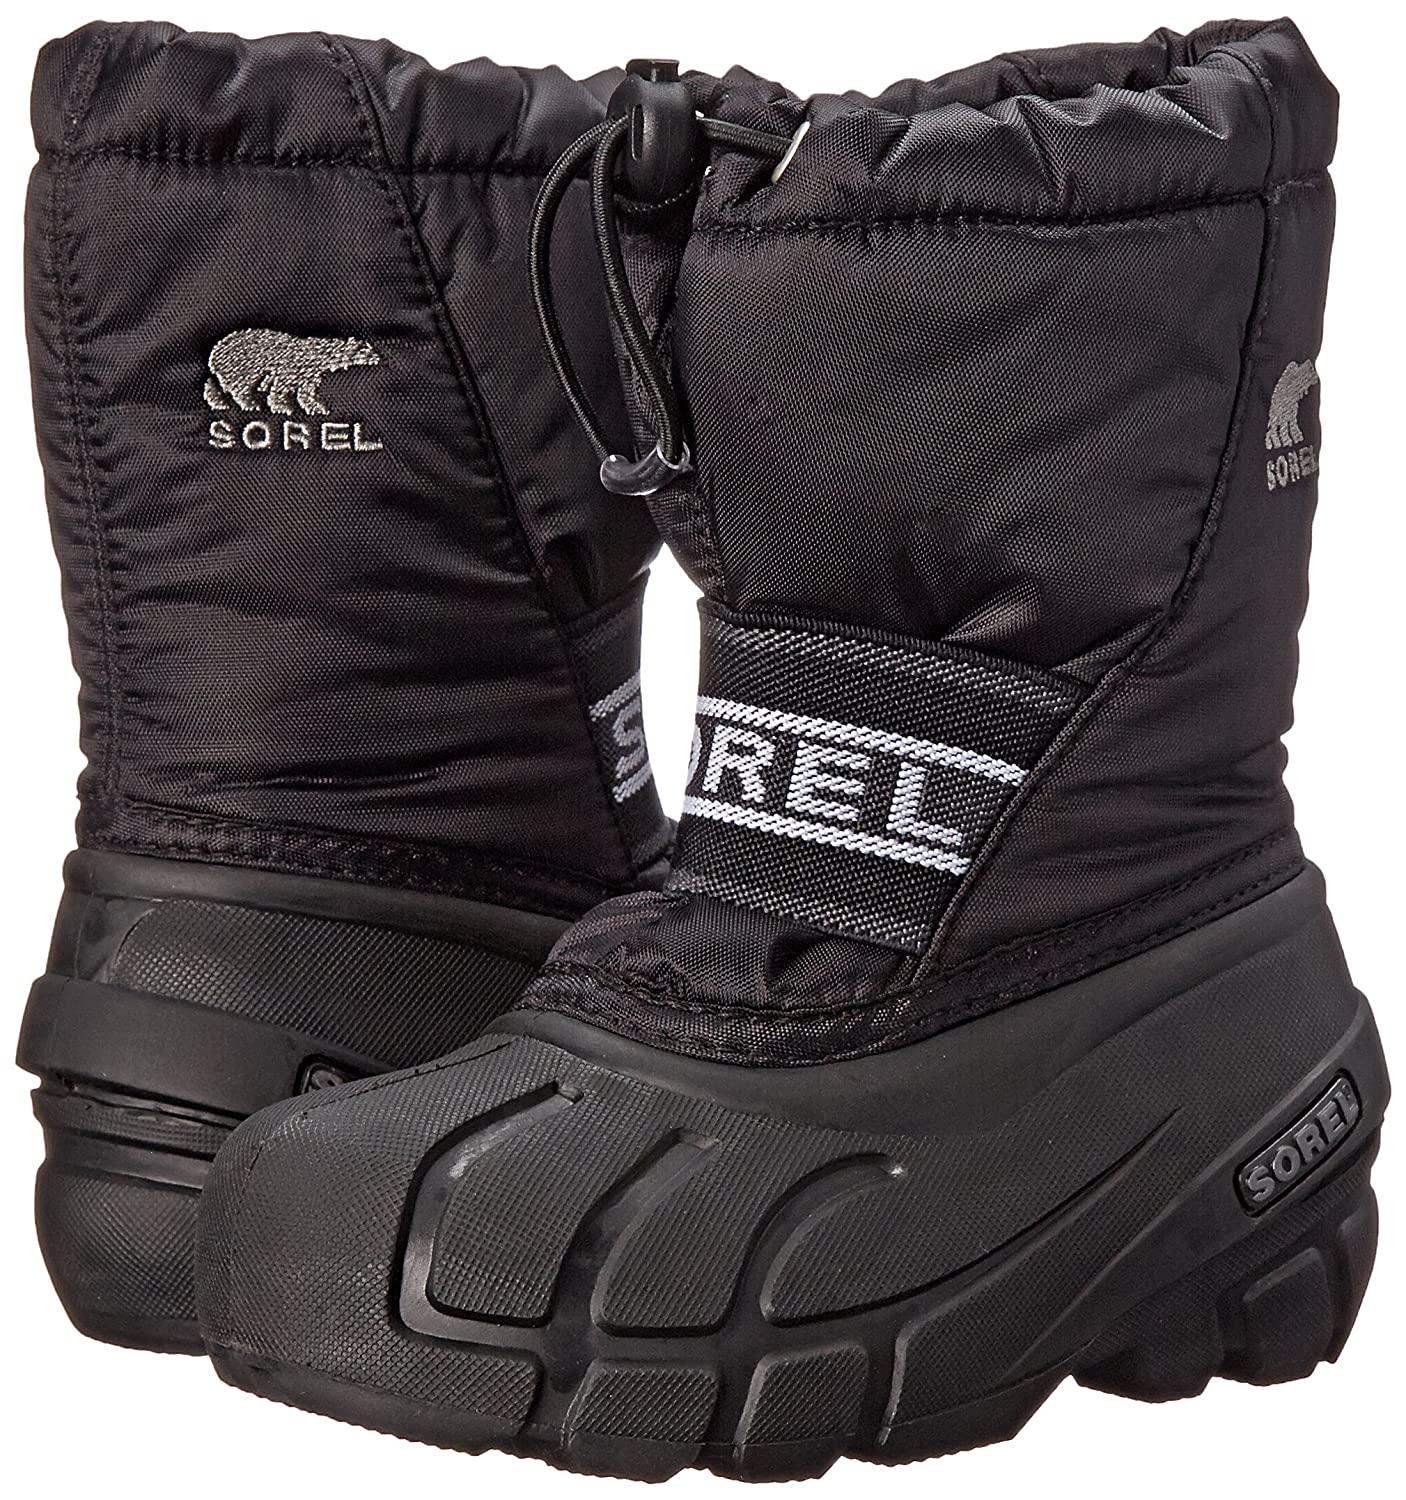 ee3d4a2891f5 Sorel Children Boots Youth CUB: Amazon.co.uk: Shoes & Bags